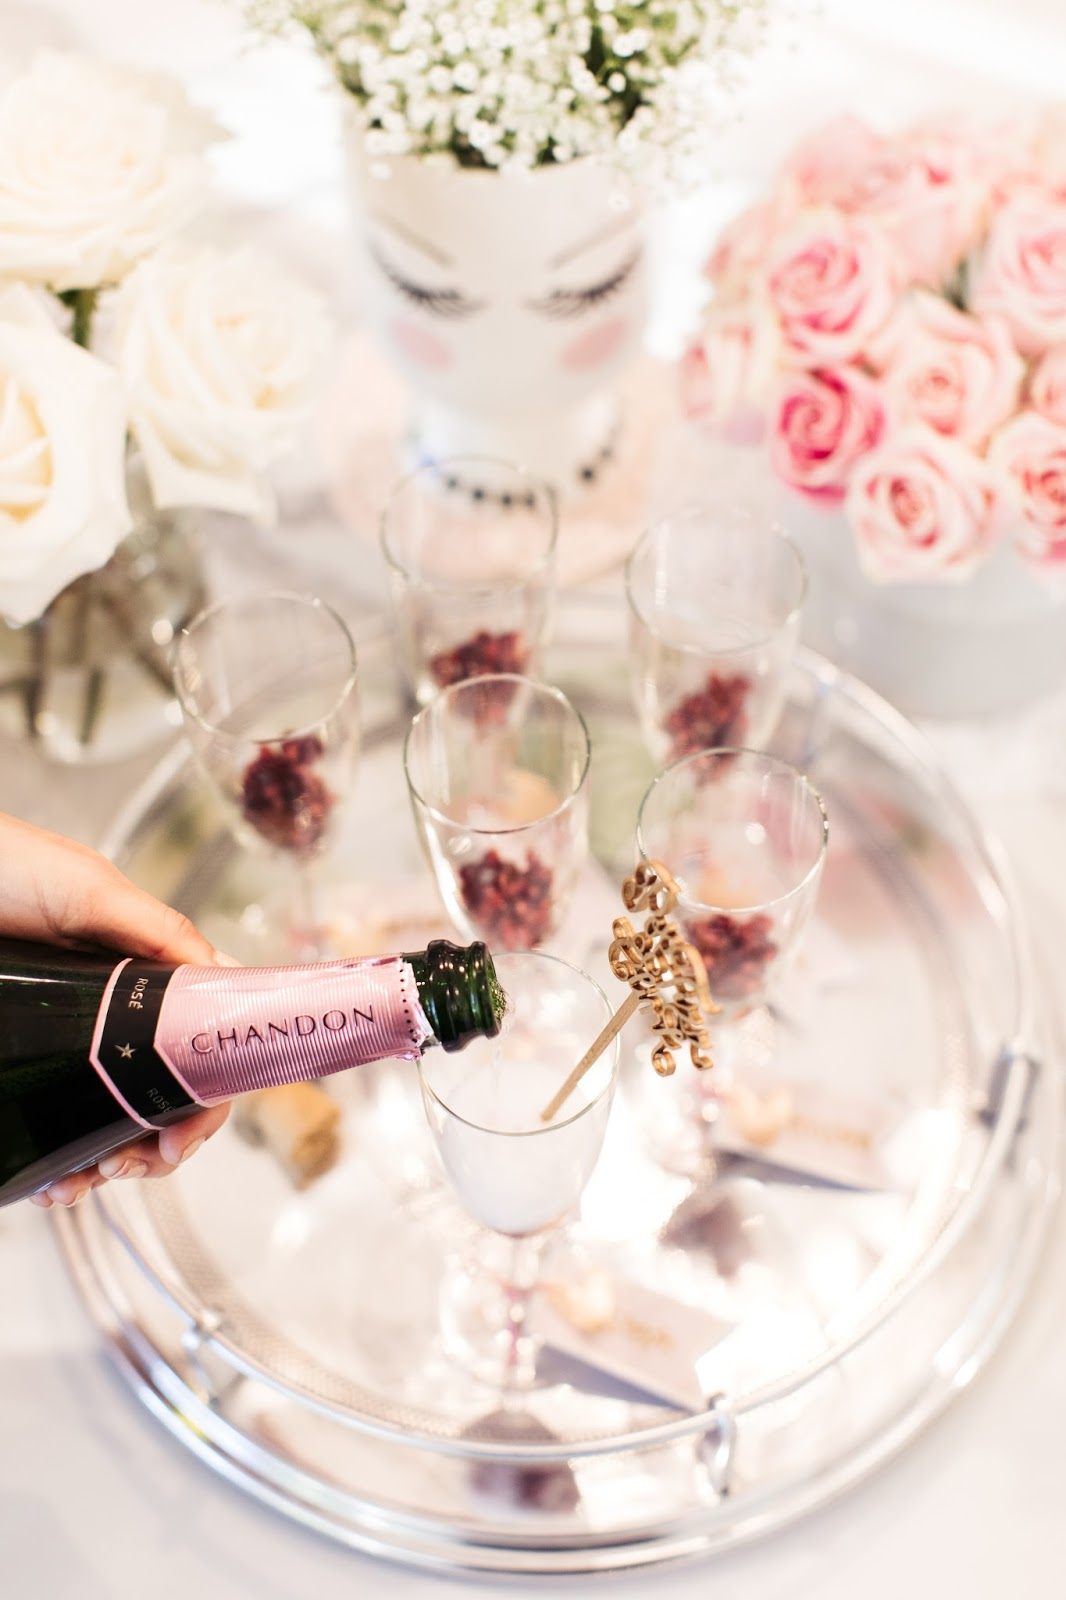 Add Pomegranate seeds to the bottom of your champagne flute for a sweet compliment to Chandon sparkling rose.